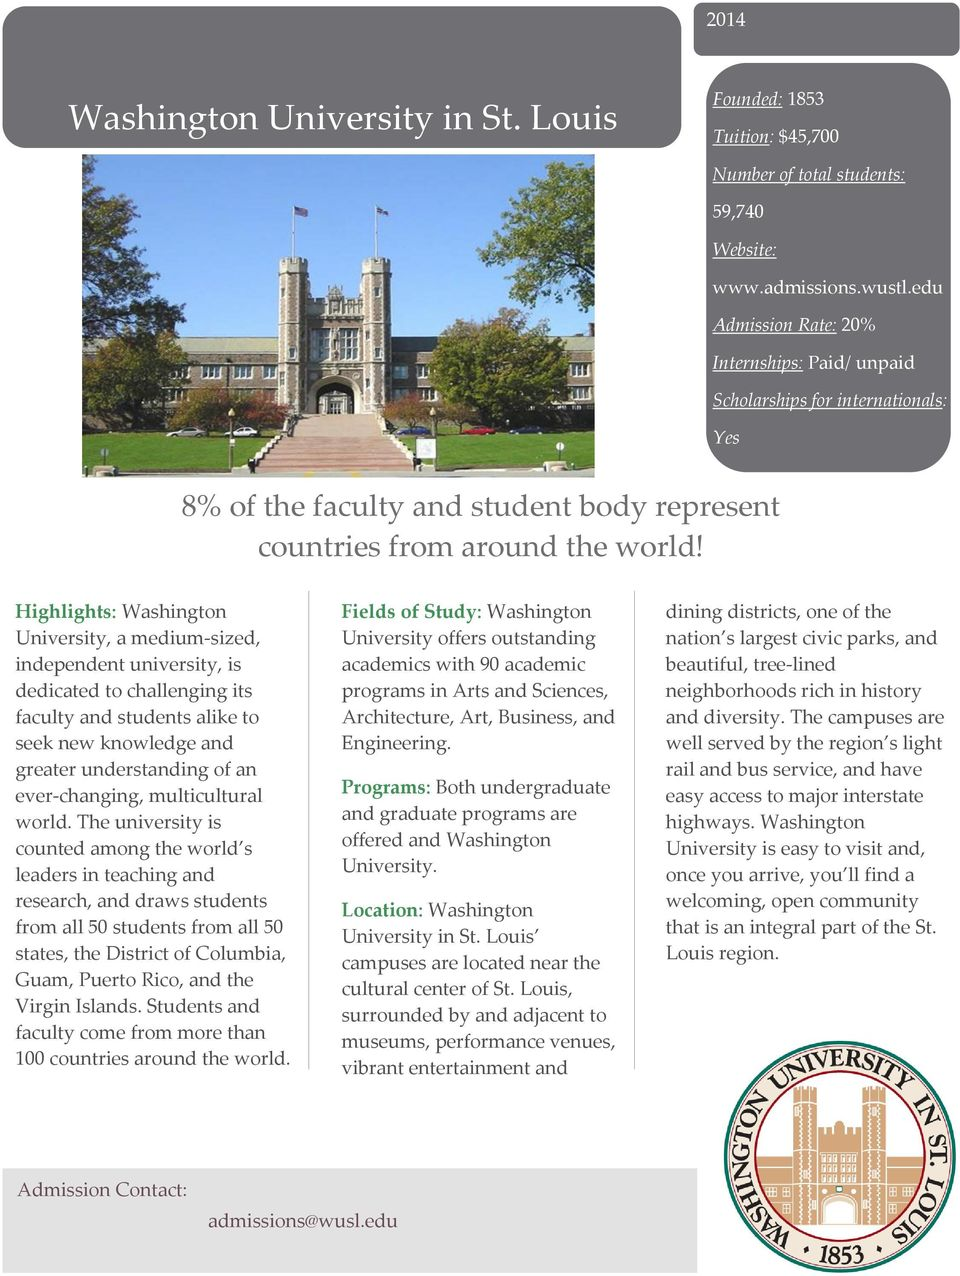 Highlights: Washington University, a medium-sized, independent university, is dedicated to challenging its faculty and students alike to seek new knowledge and greater understanding of an